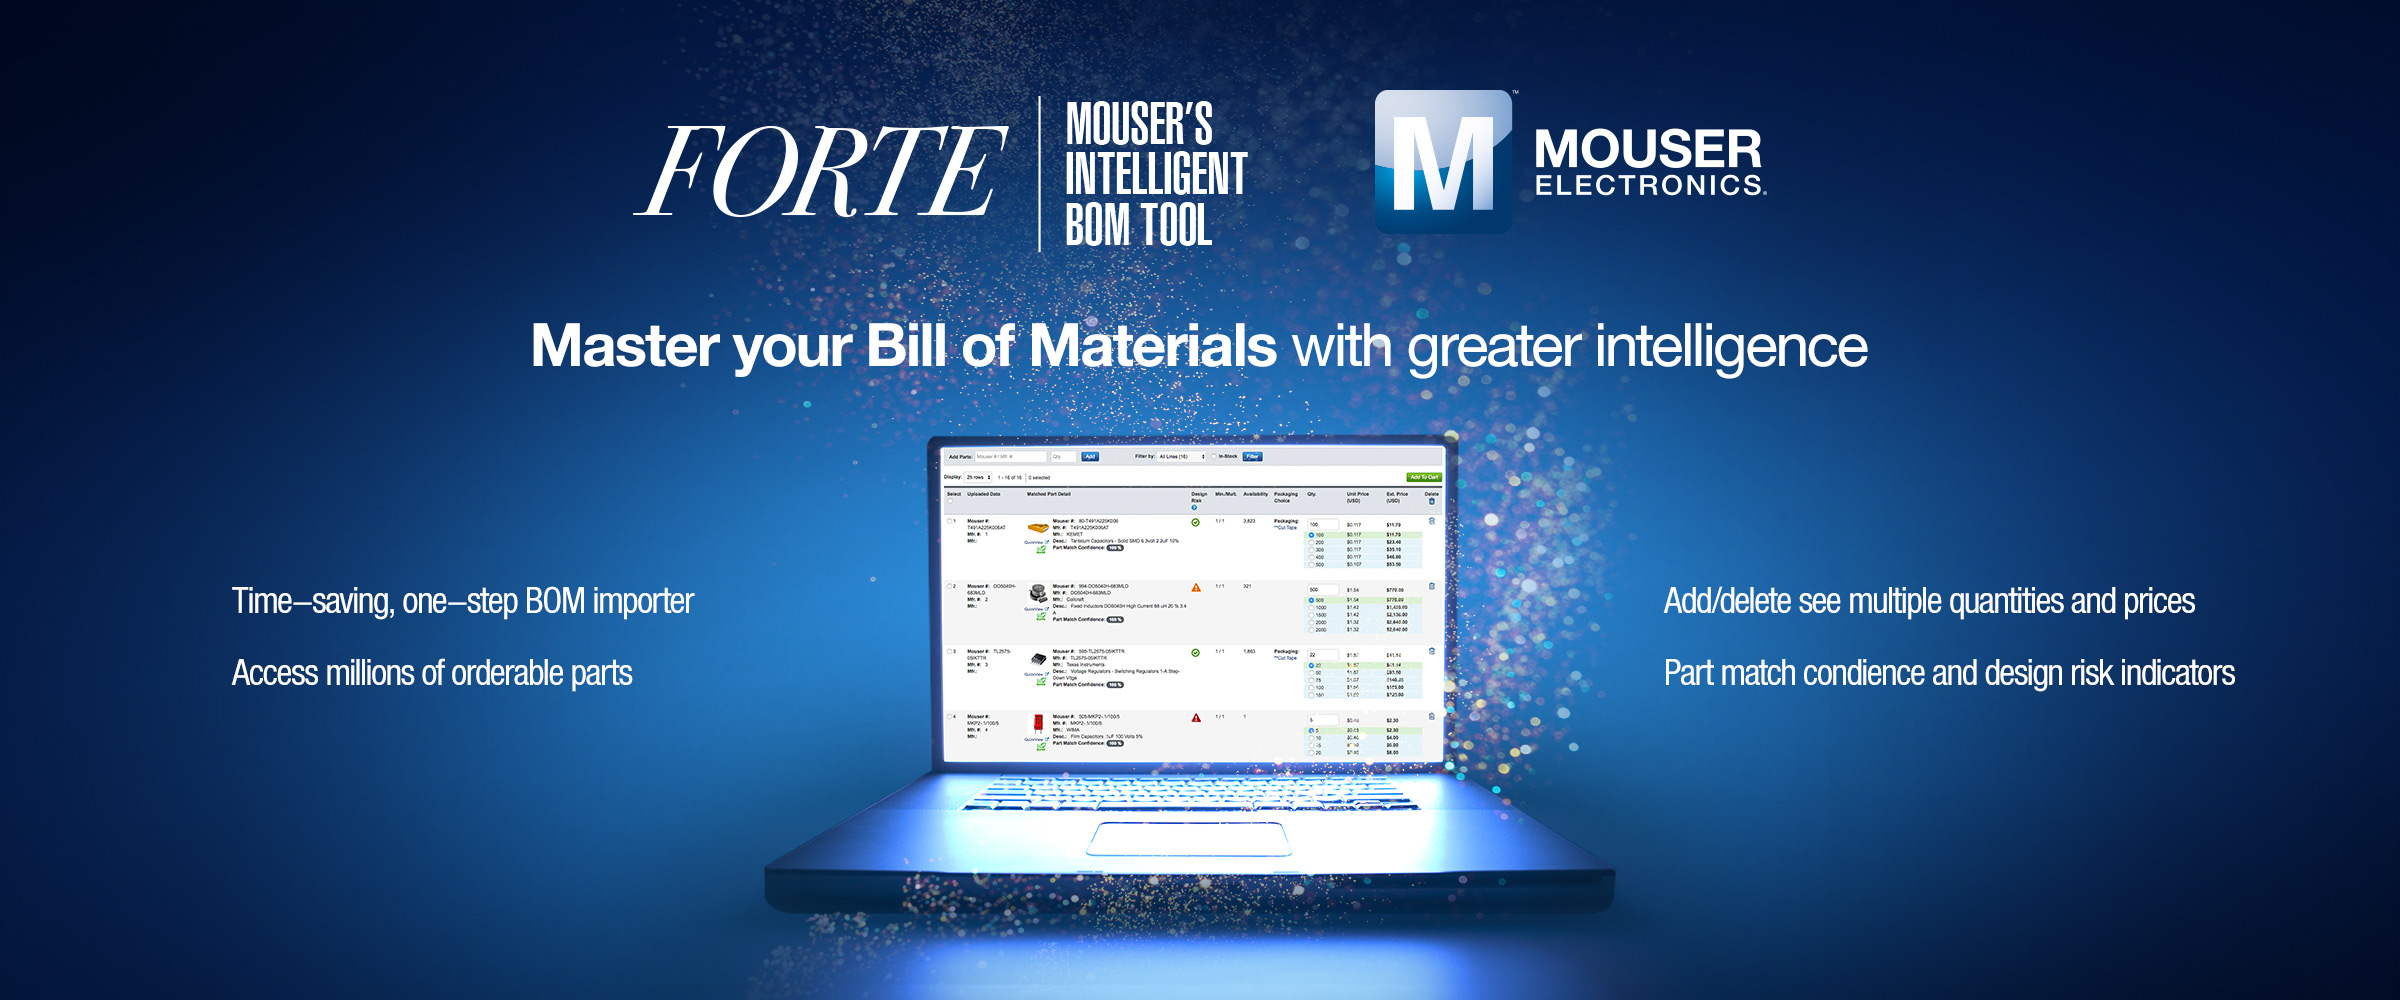 Mouser Unveils FORTE, a Revolutionary New BOM Tool